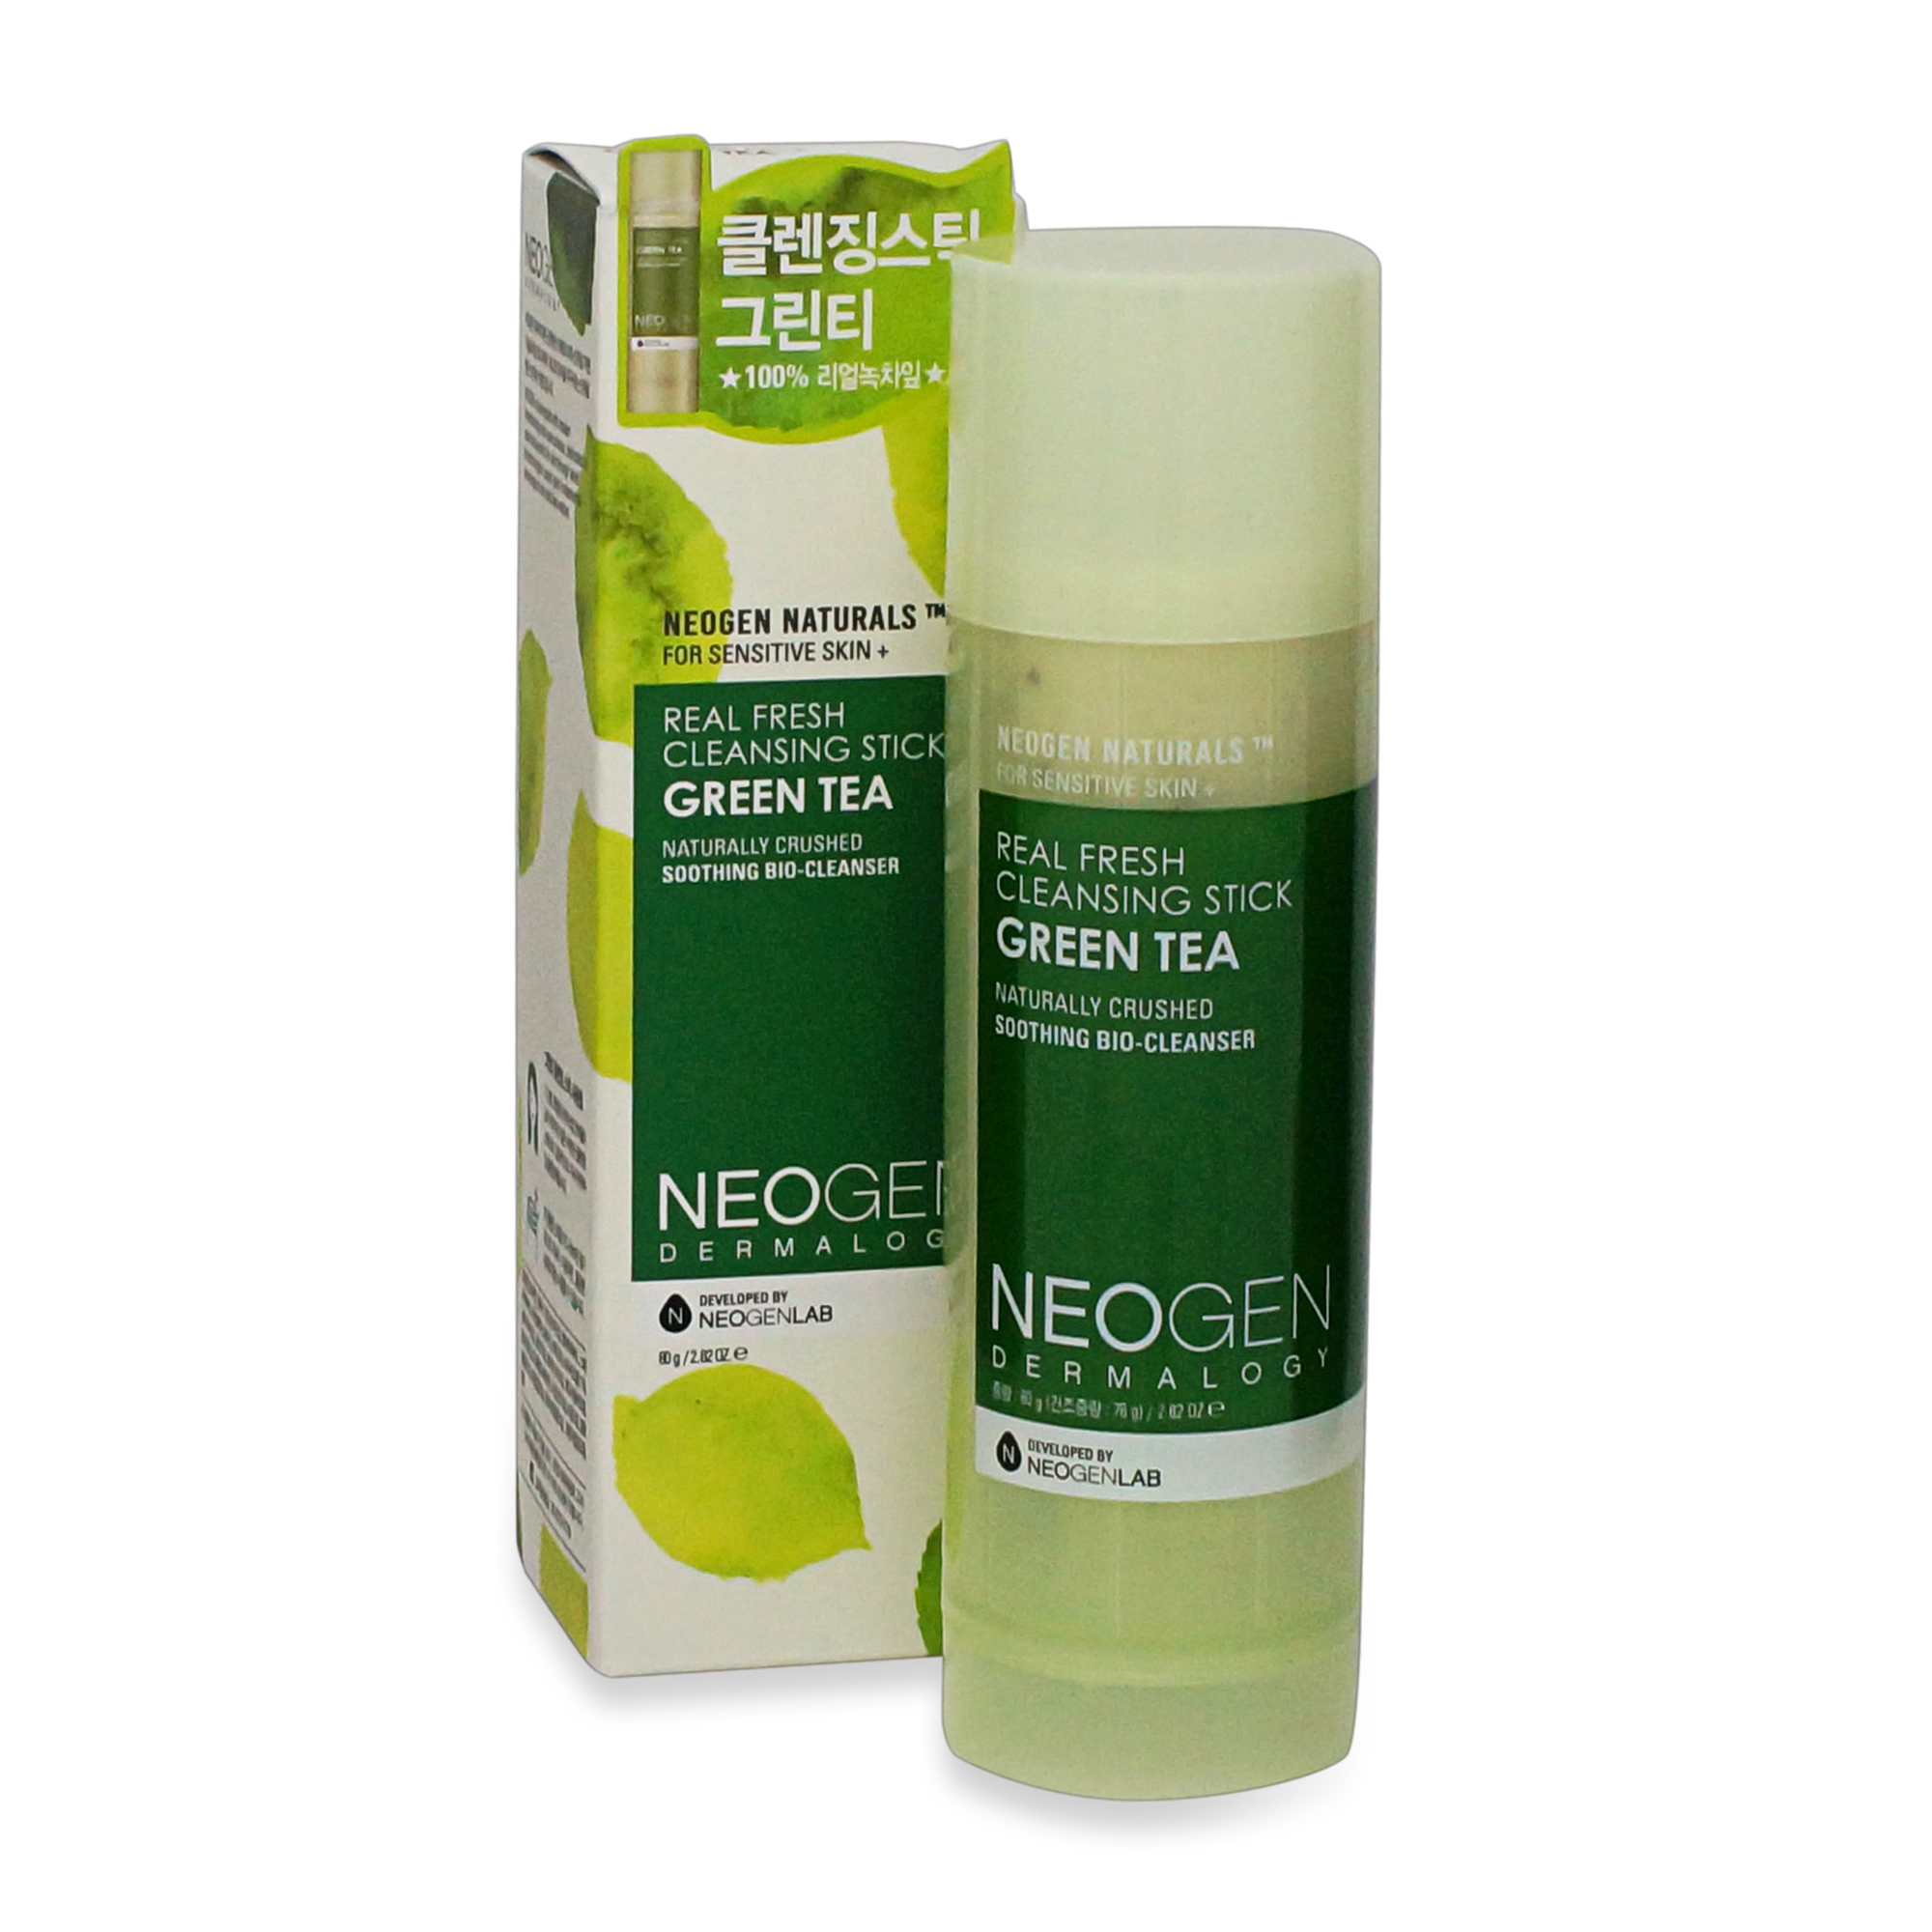 Neogen Real Fresh Cleansing Stick Green Tea, Face